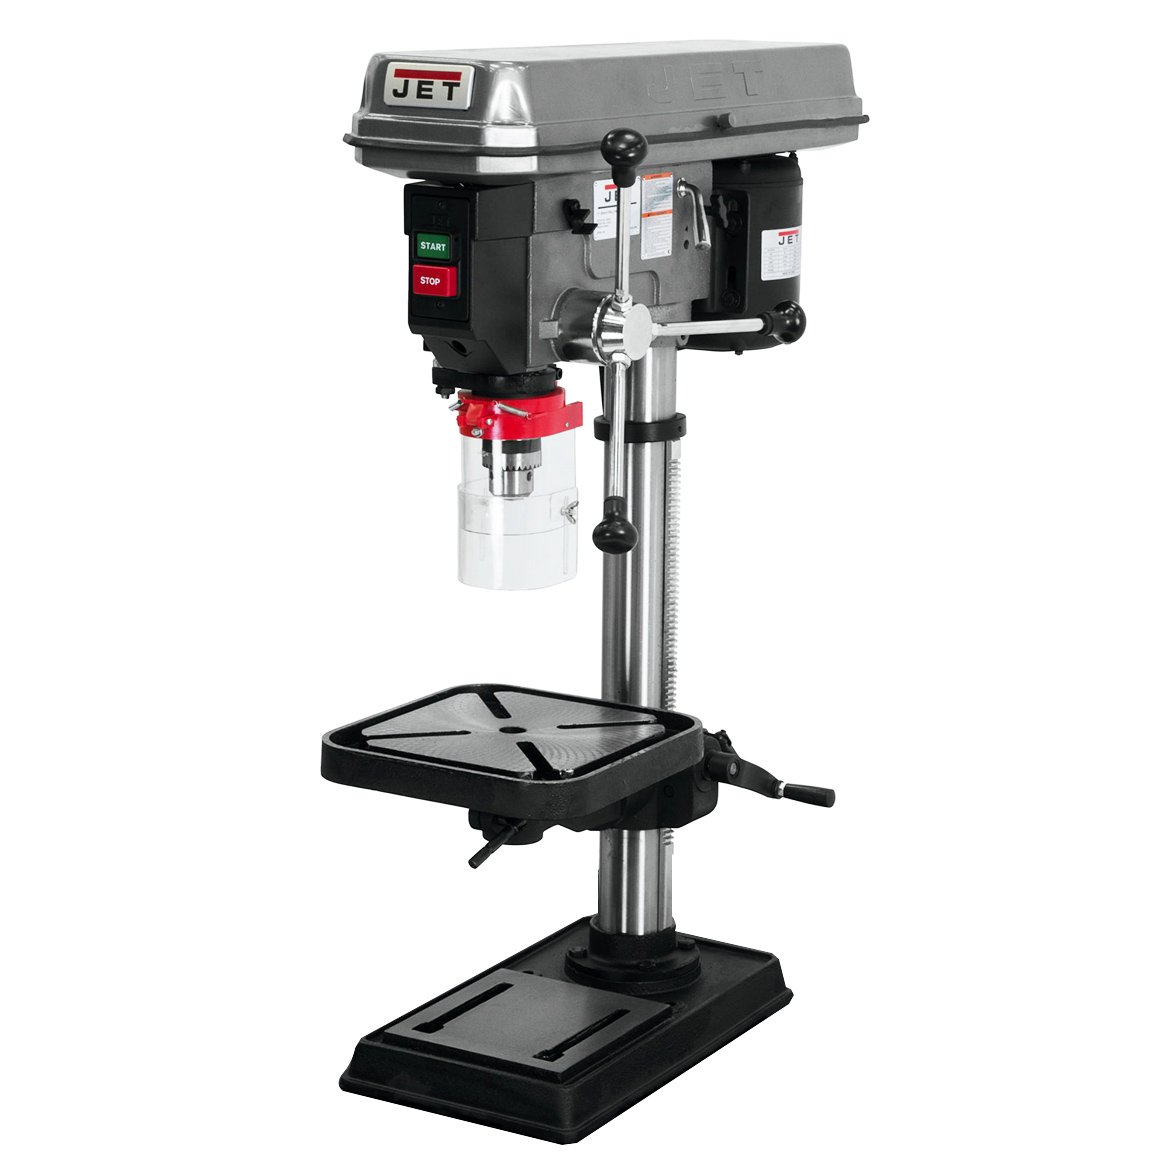 JET J-2530 15-Inch 3 4-Horspower 115-Volt Bench Model Drill Press